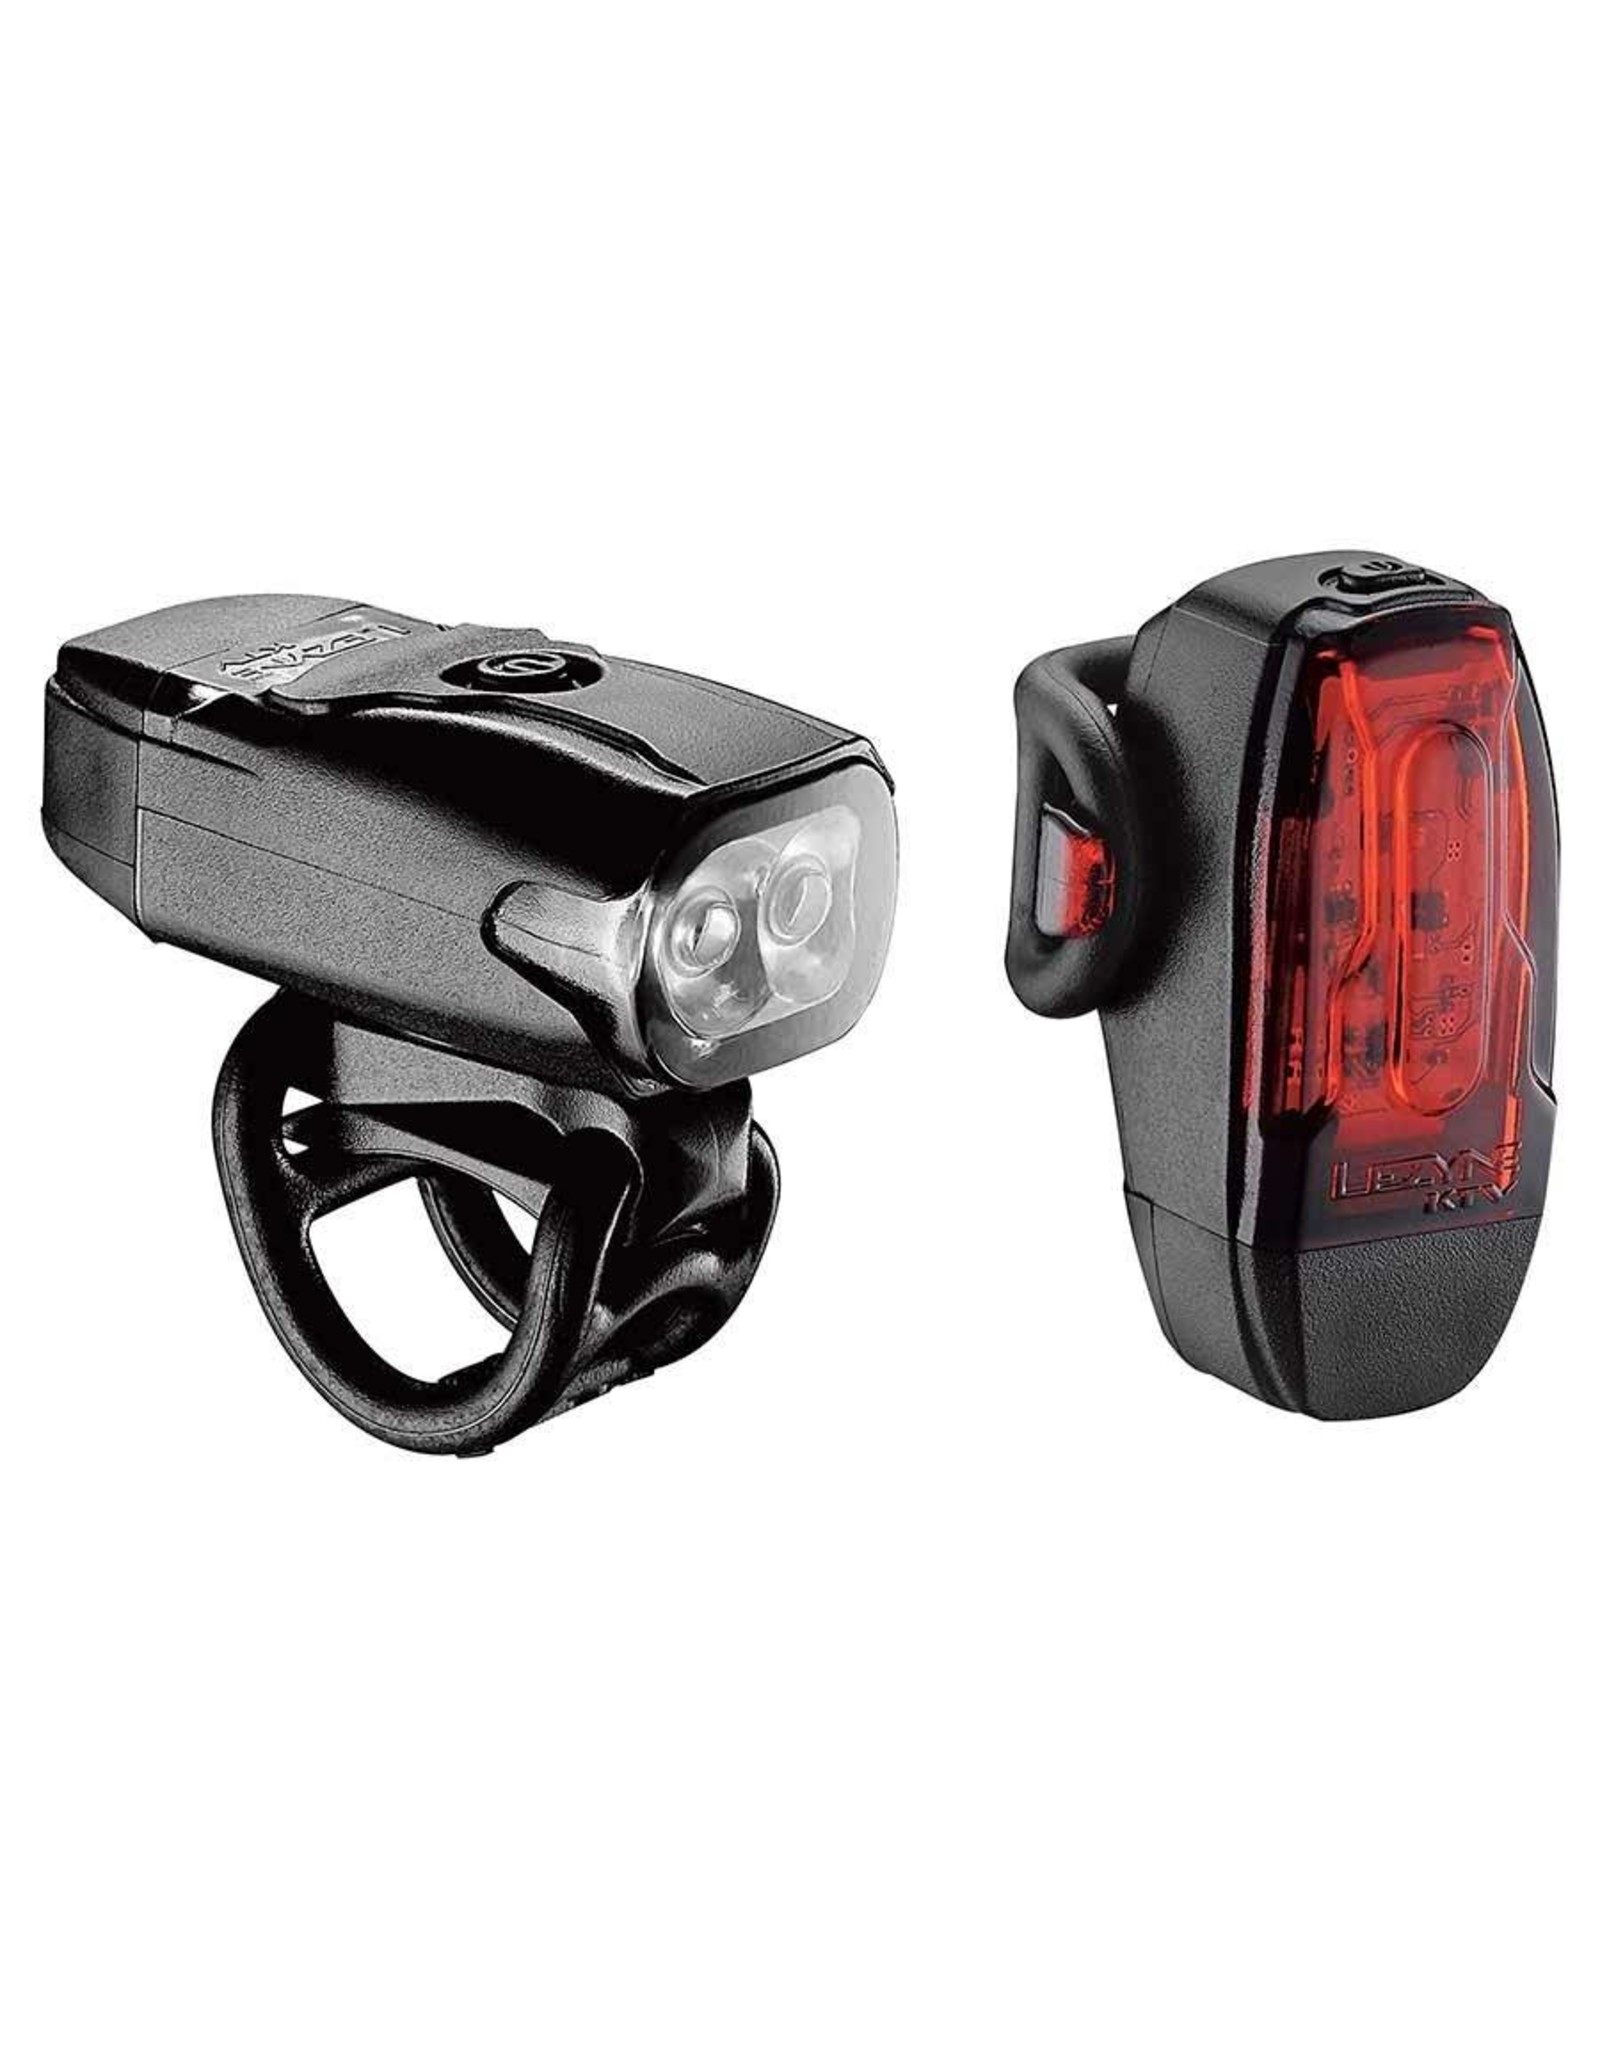 Lezyne Lezyne KTV Drive Light Set 10/200 Lumens Black